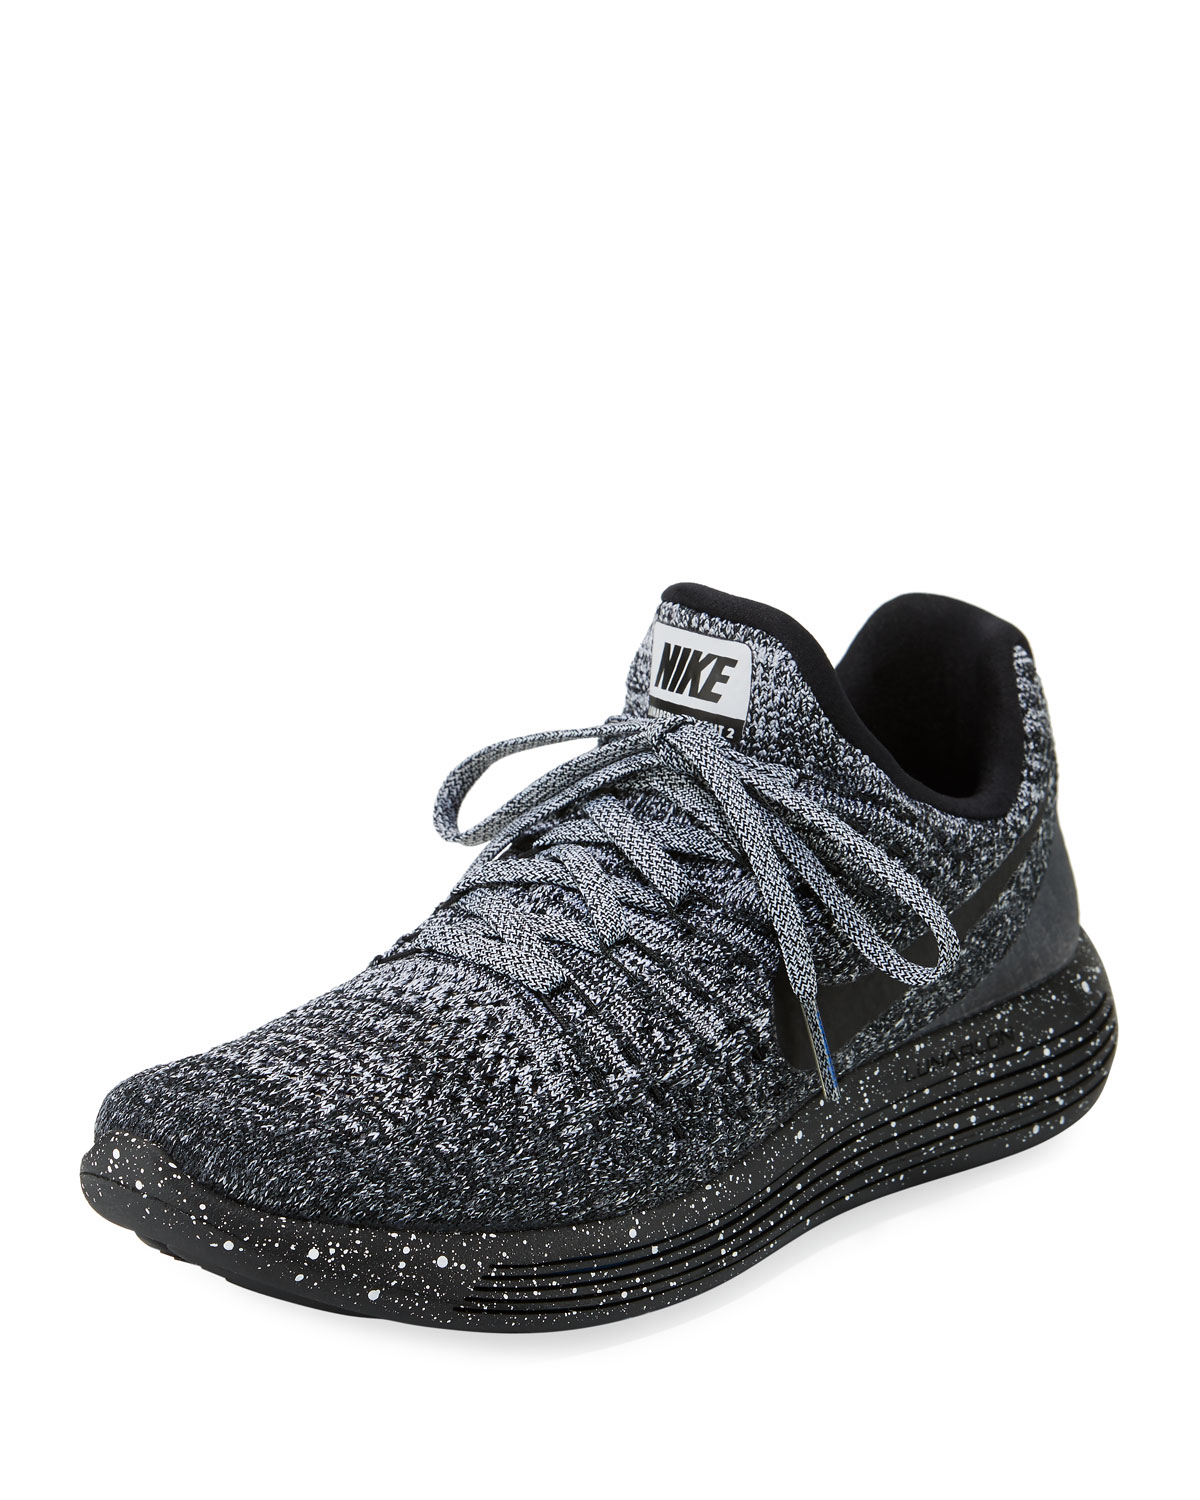 best sneakers b02f6 6874b LunarEpic Low Flyknit 2 Running Shoe